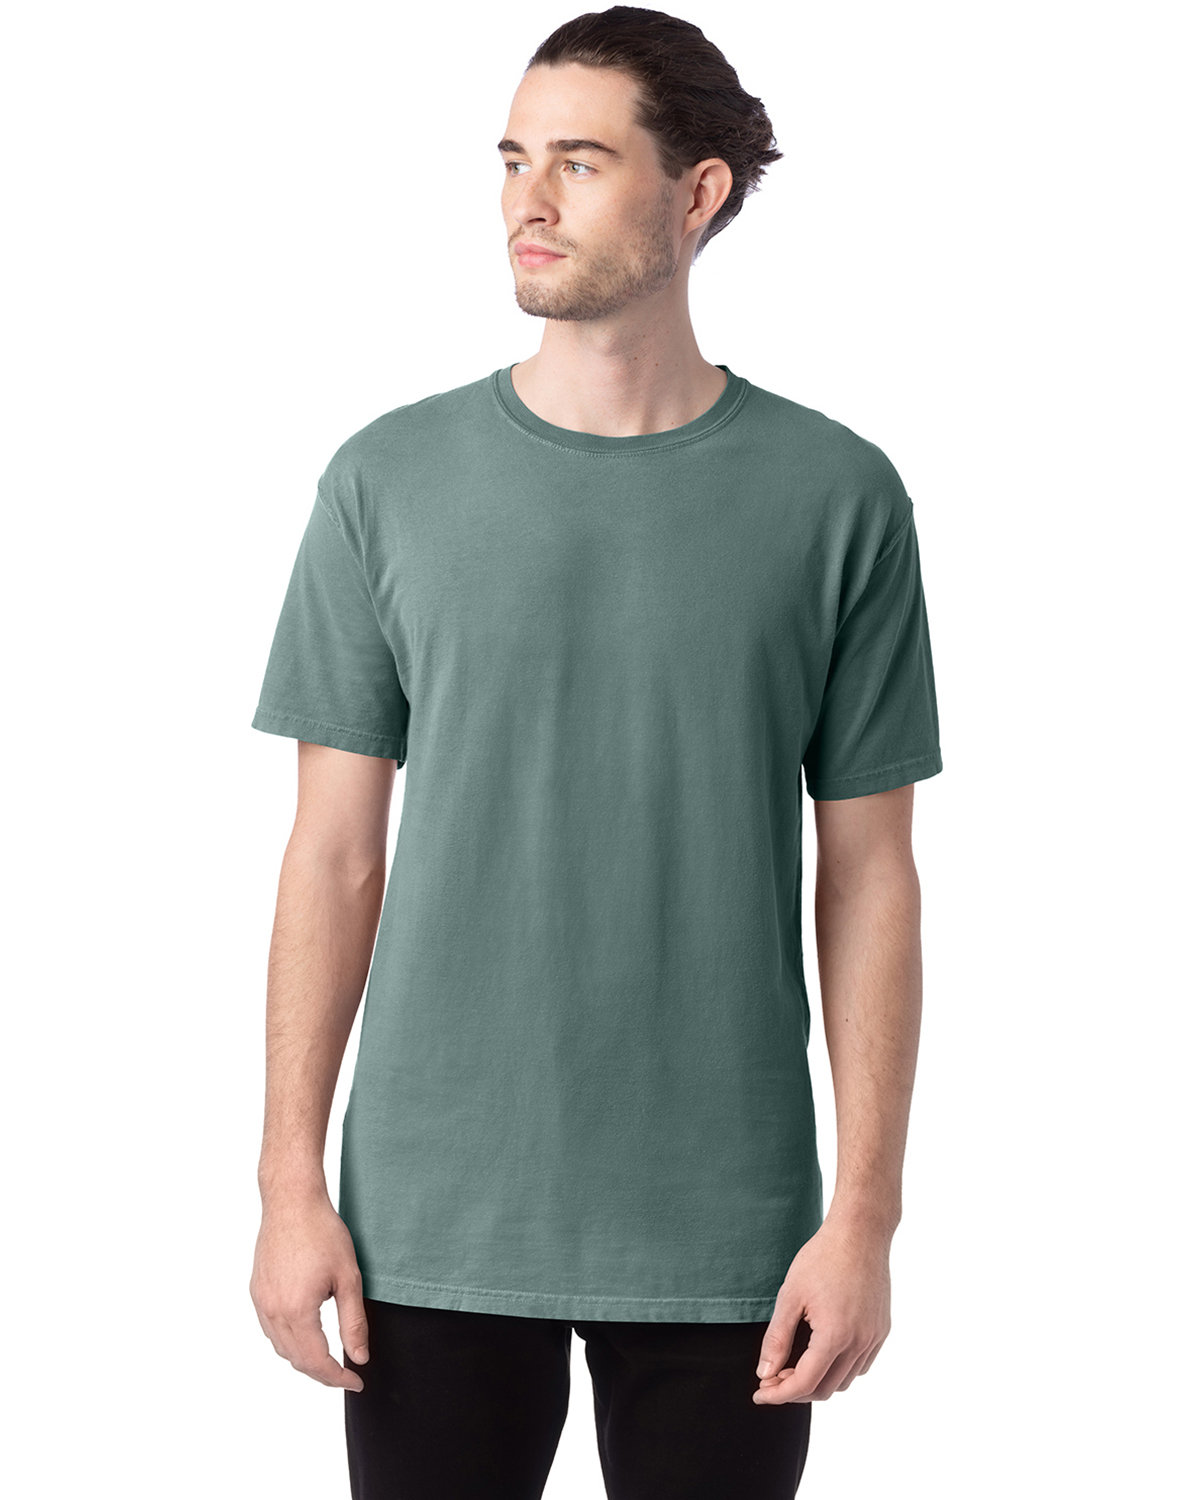 ComfortWash by Hanes Men's 5.5 oz., 100% Ringspun Cotton Garment-Dyed T-Shirt CYPRESS GREEN